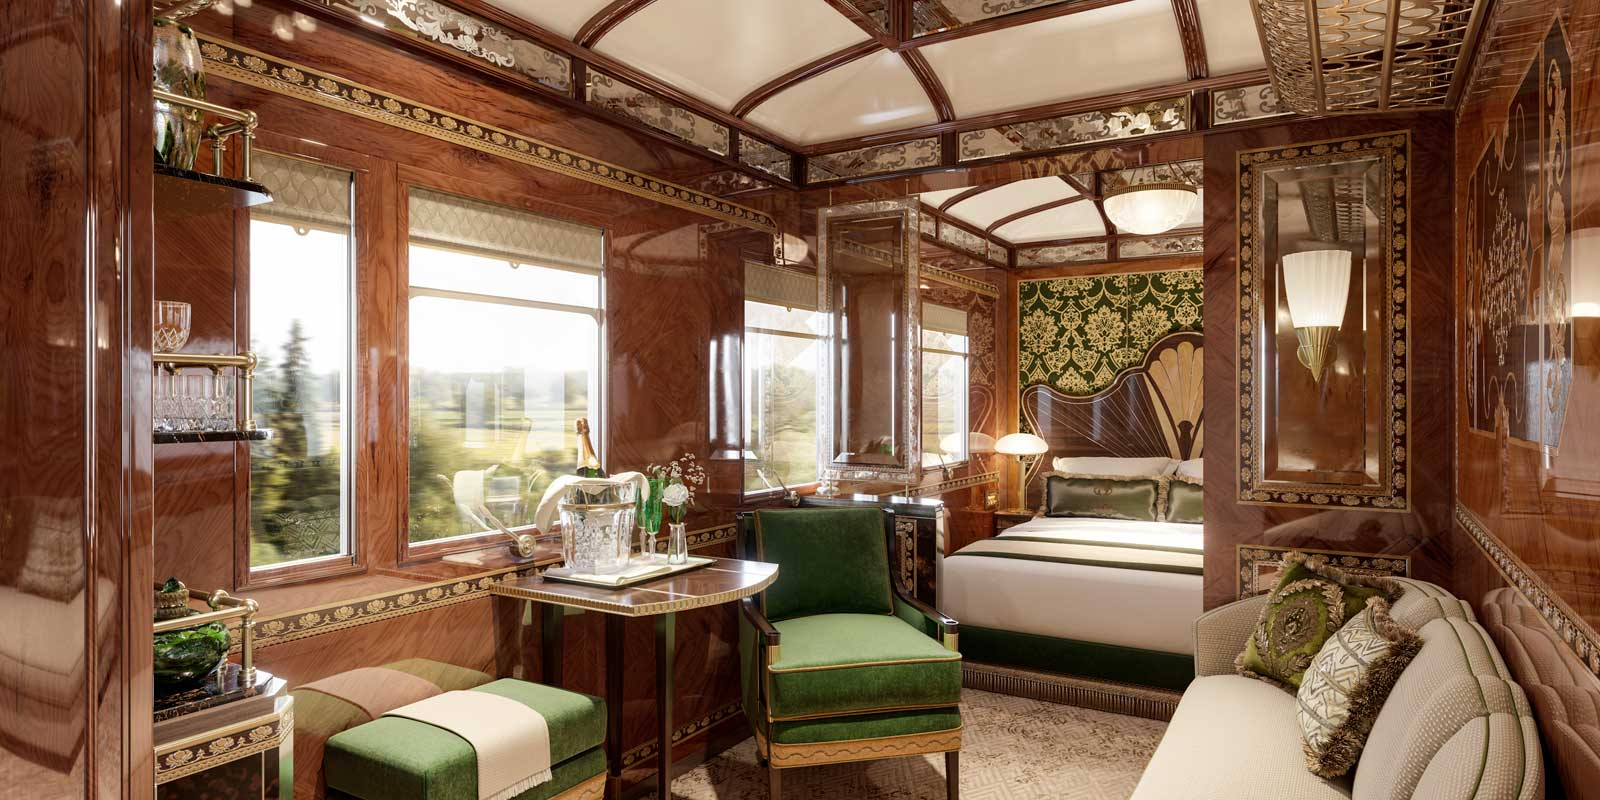 3 New Venice Simplon Orient Express Grand Suites